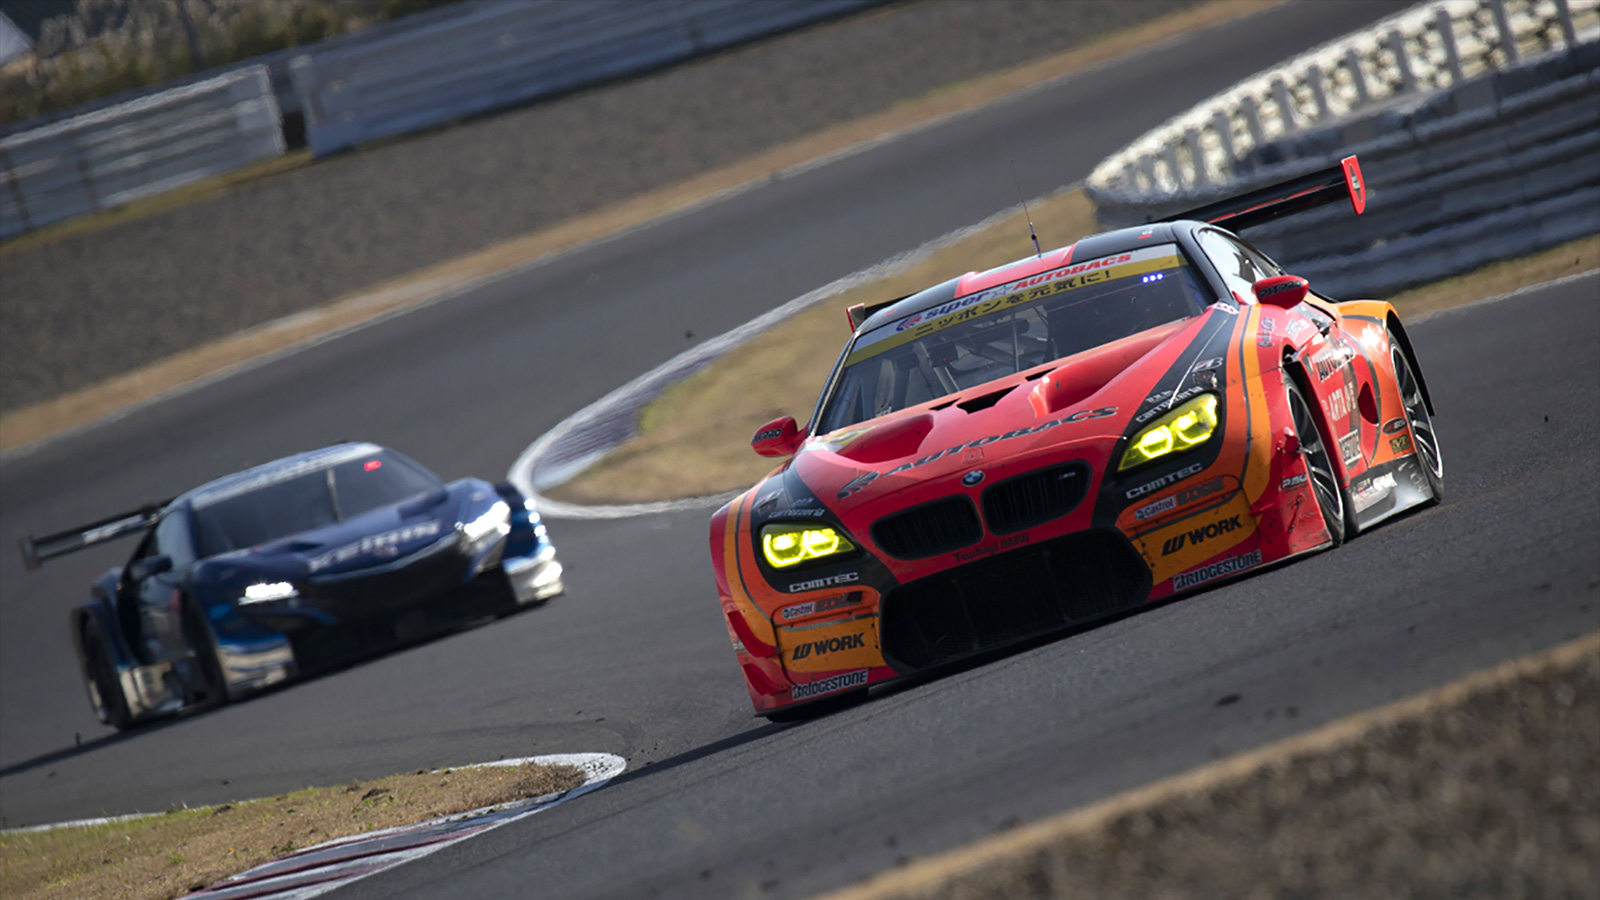 Walkinshaw and Takagi Charge to Superb Top Four Finish at Autopolis to Extend GT300 Super GT Championship Lead